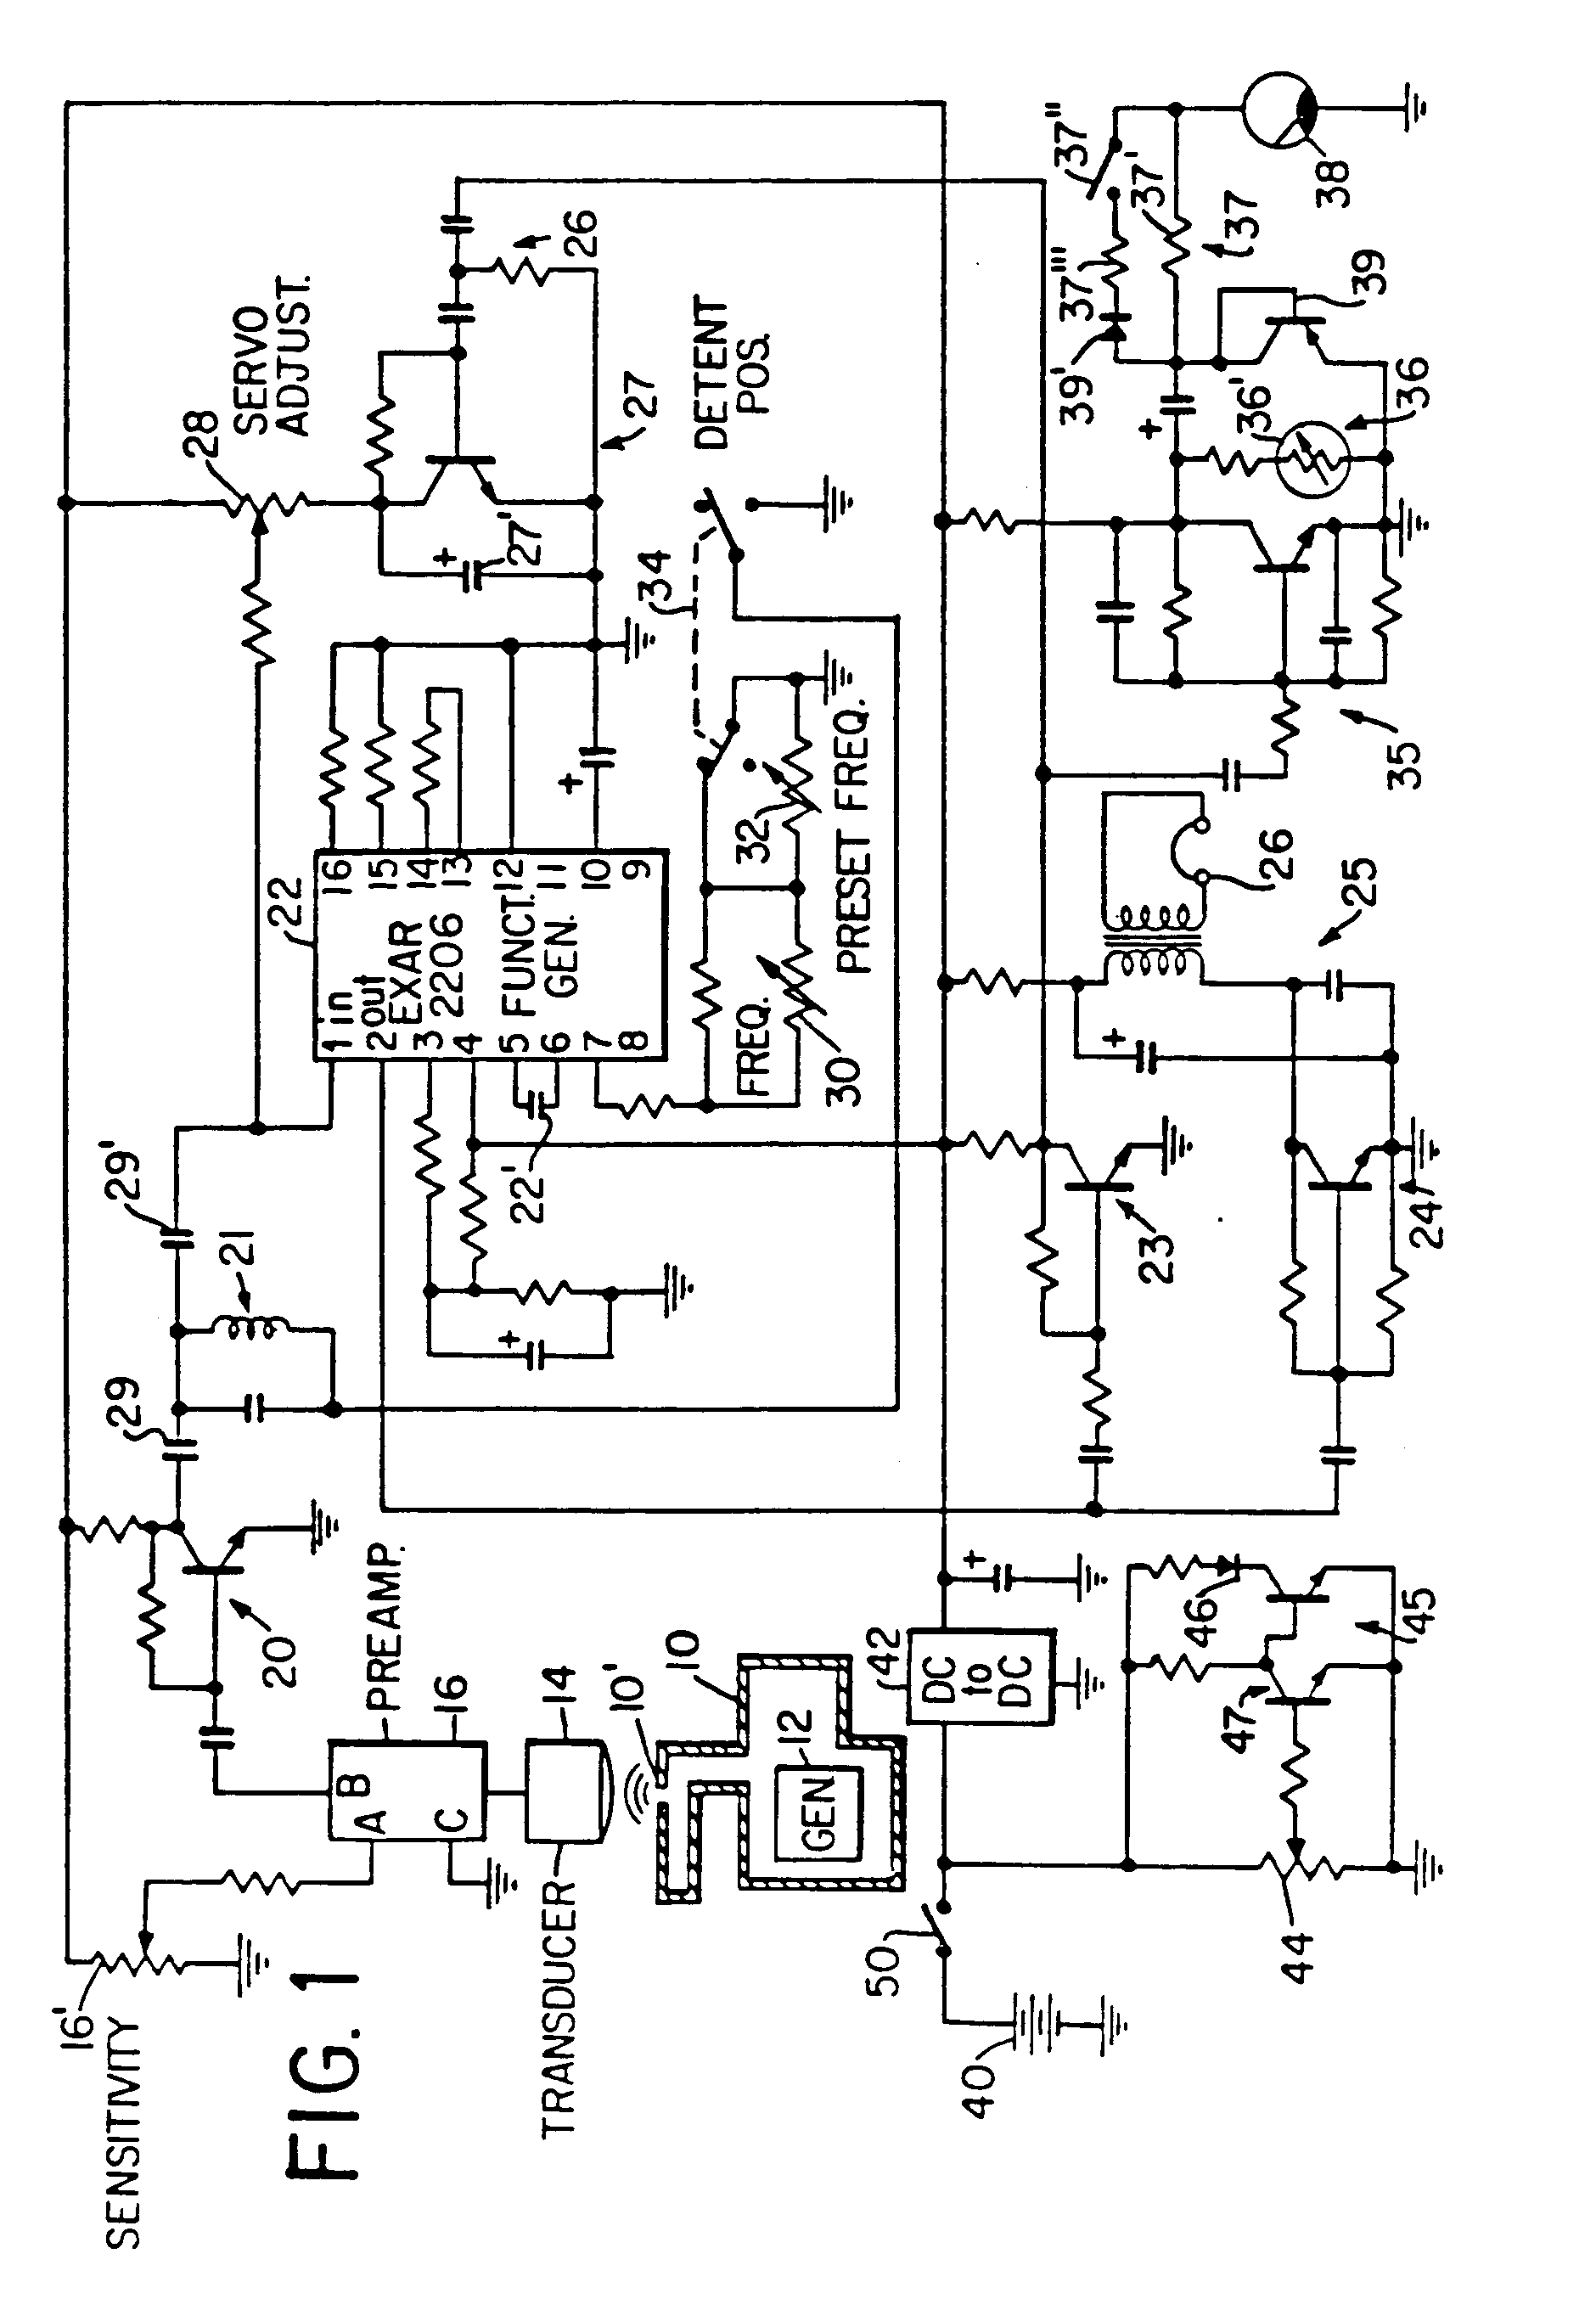 Ultrasonic Light Switch Wiring Diagram 38 Images Combination Lock 4 Controlcircuit Circuit Seekiccom Imgf0001 Patent Ep0303776b1 Energy Generator Google Patents 3 Way At